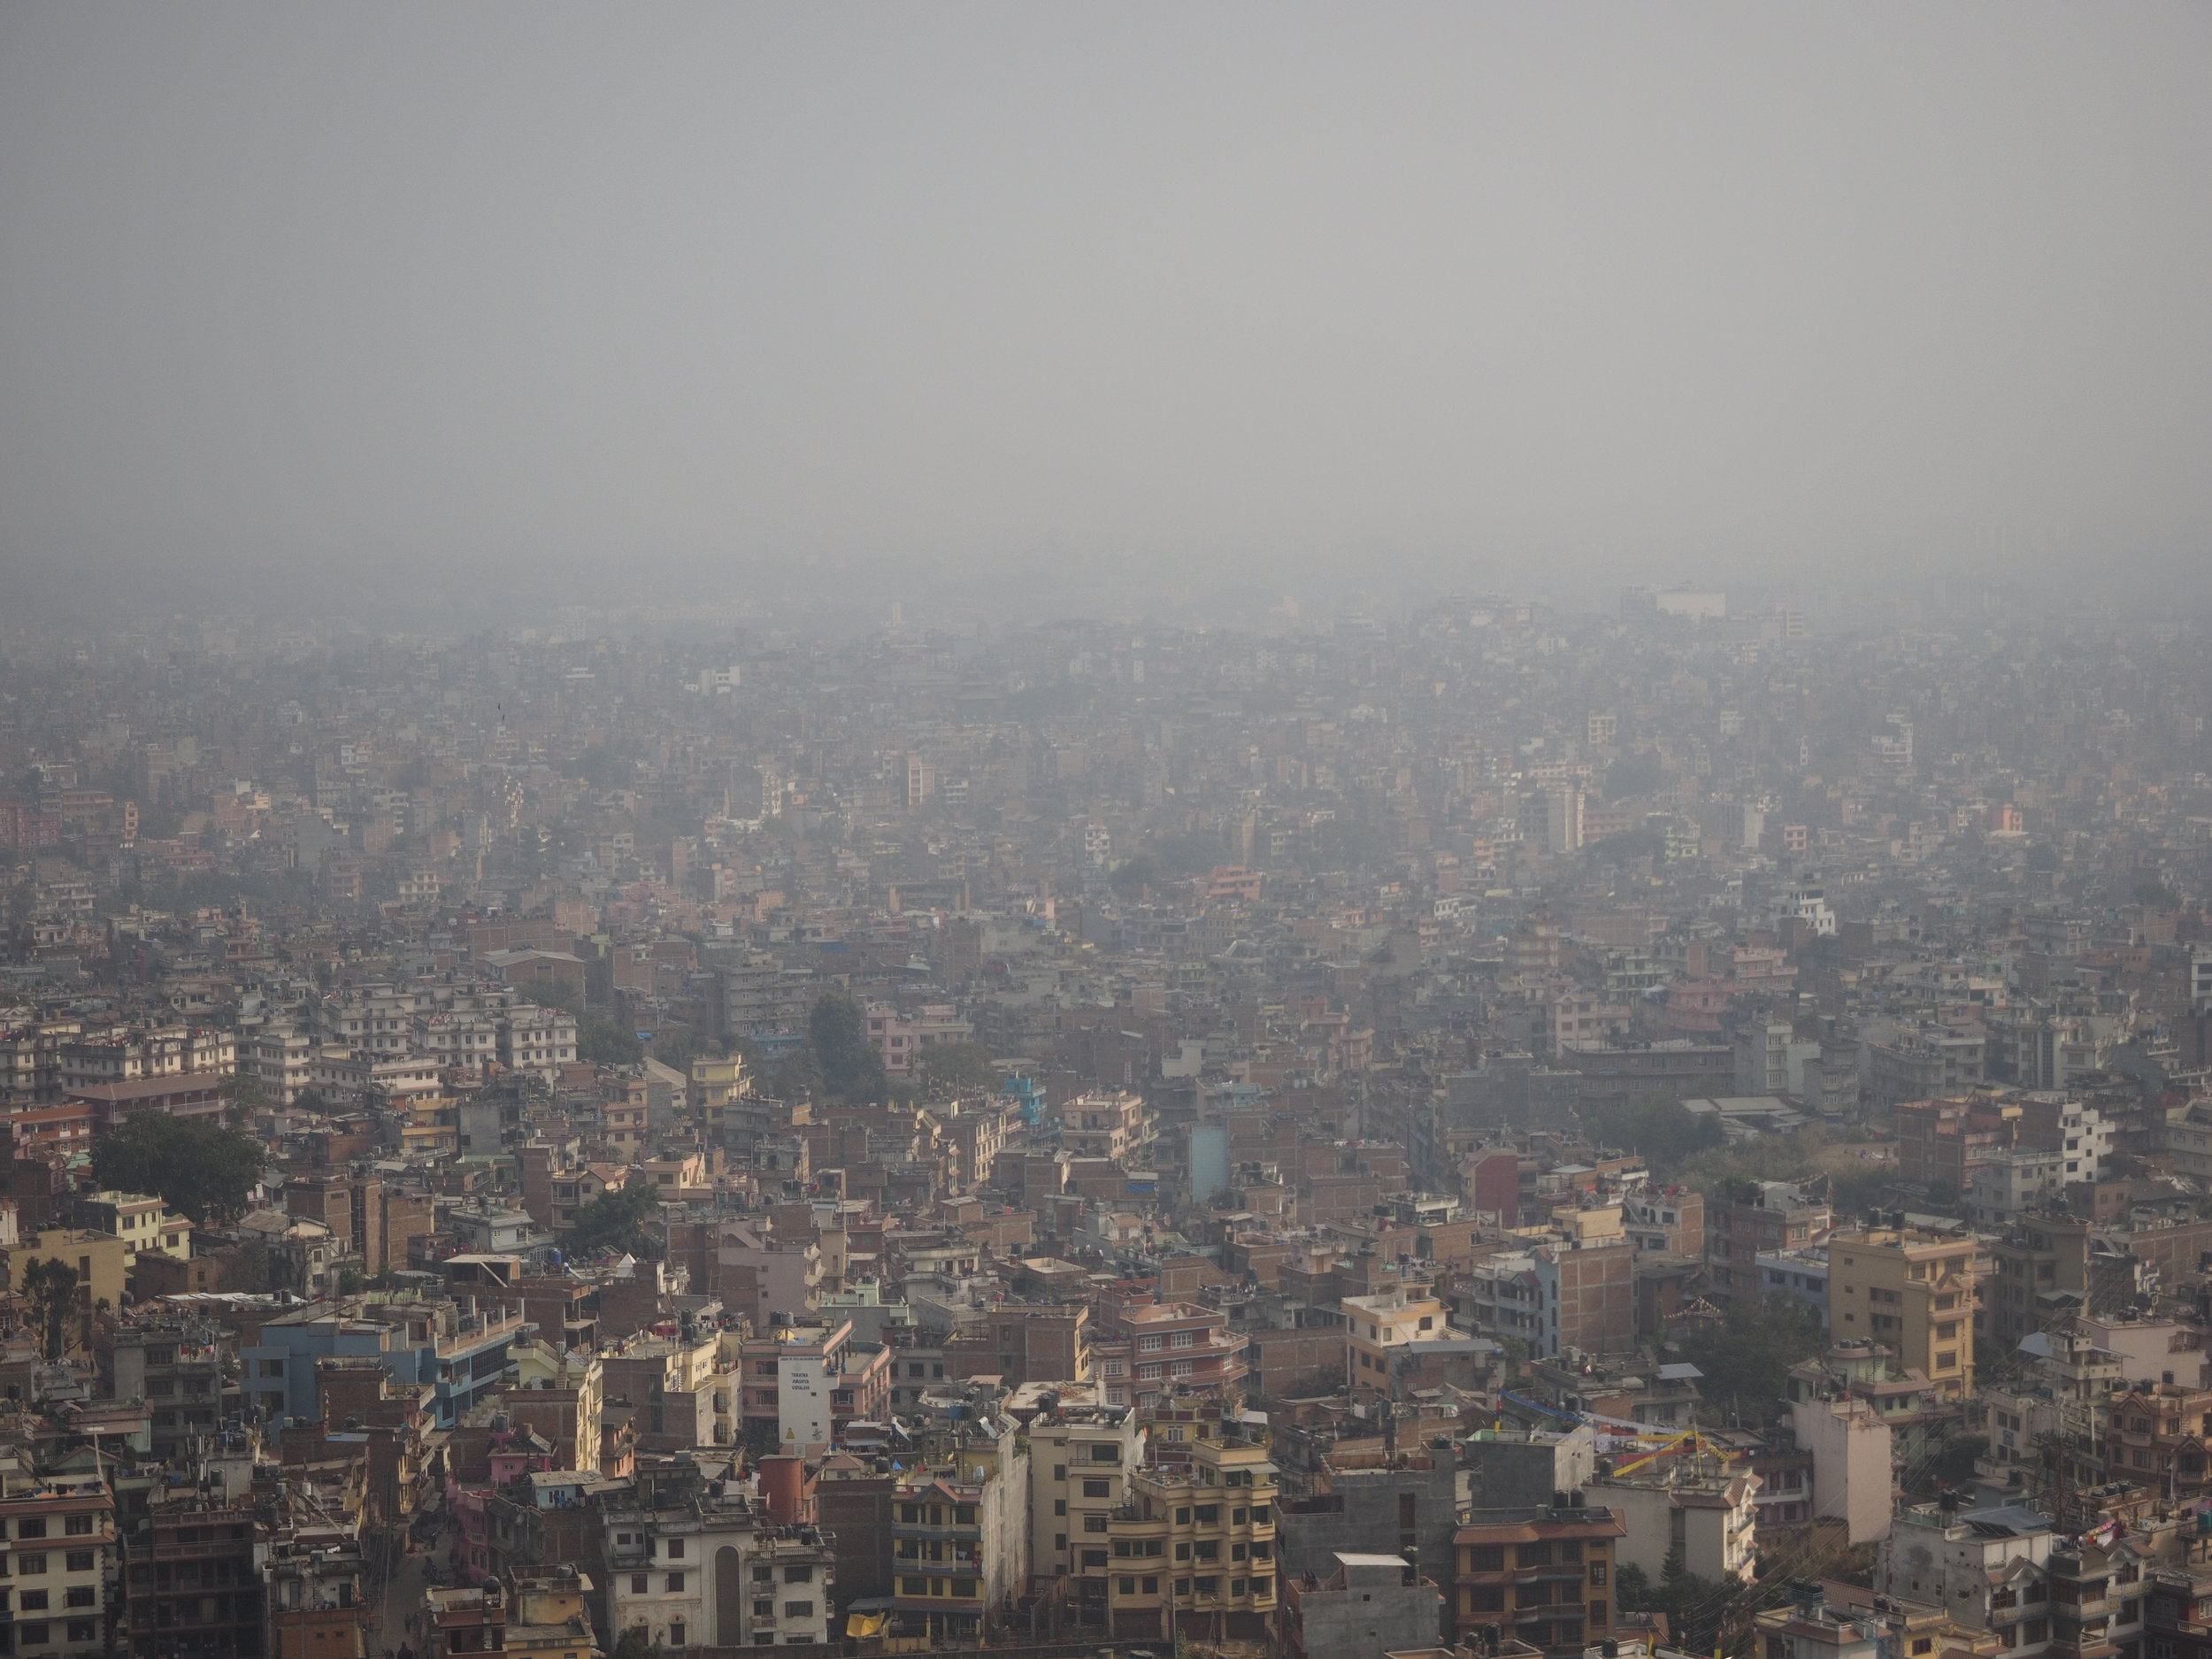 The view of Kathmandu from the Monkey Temple.